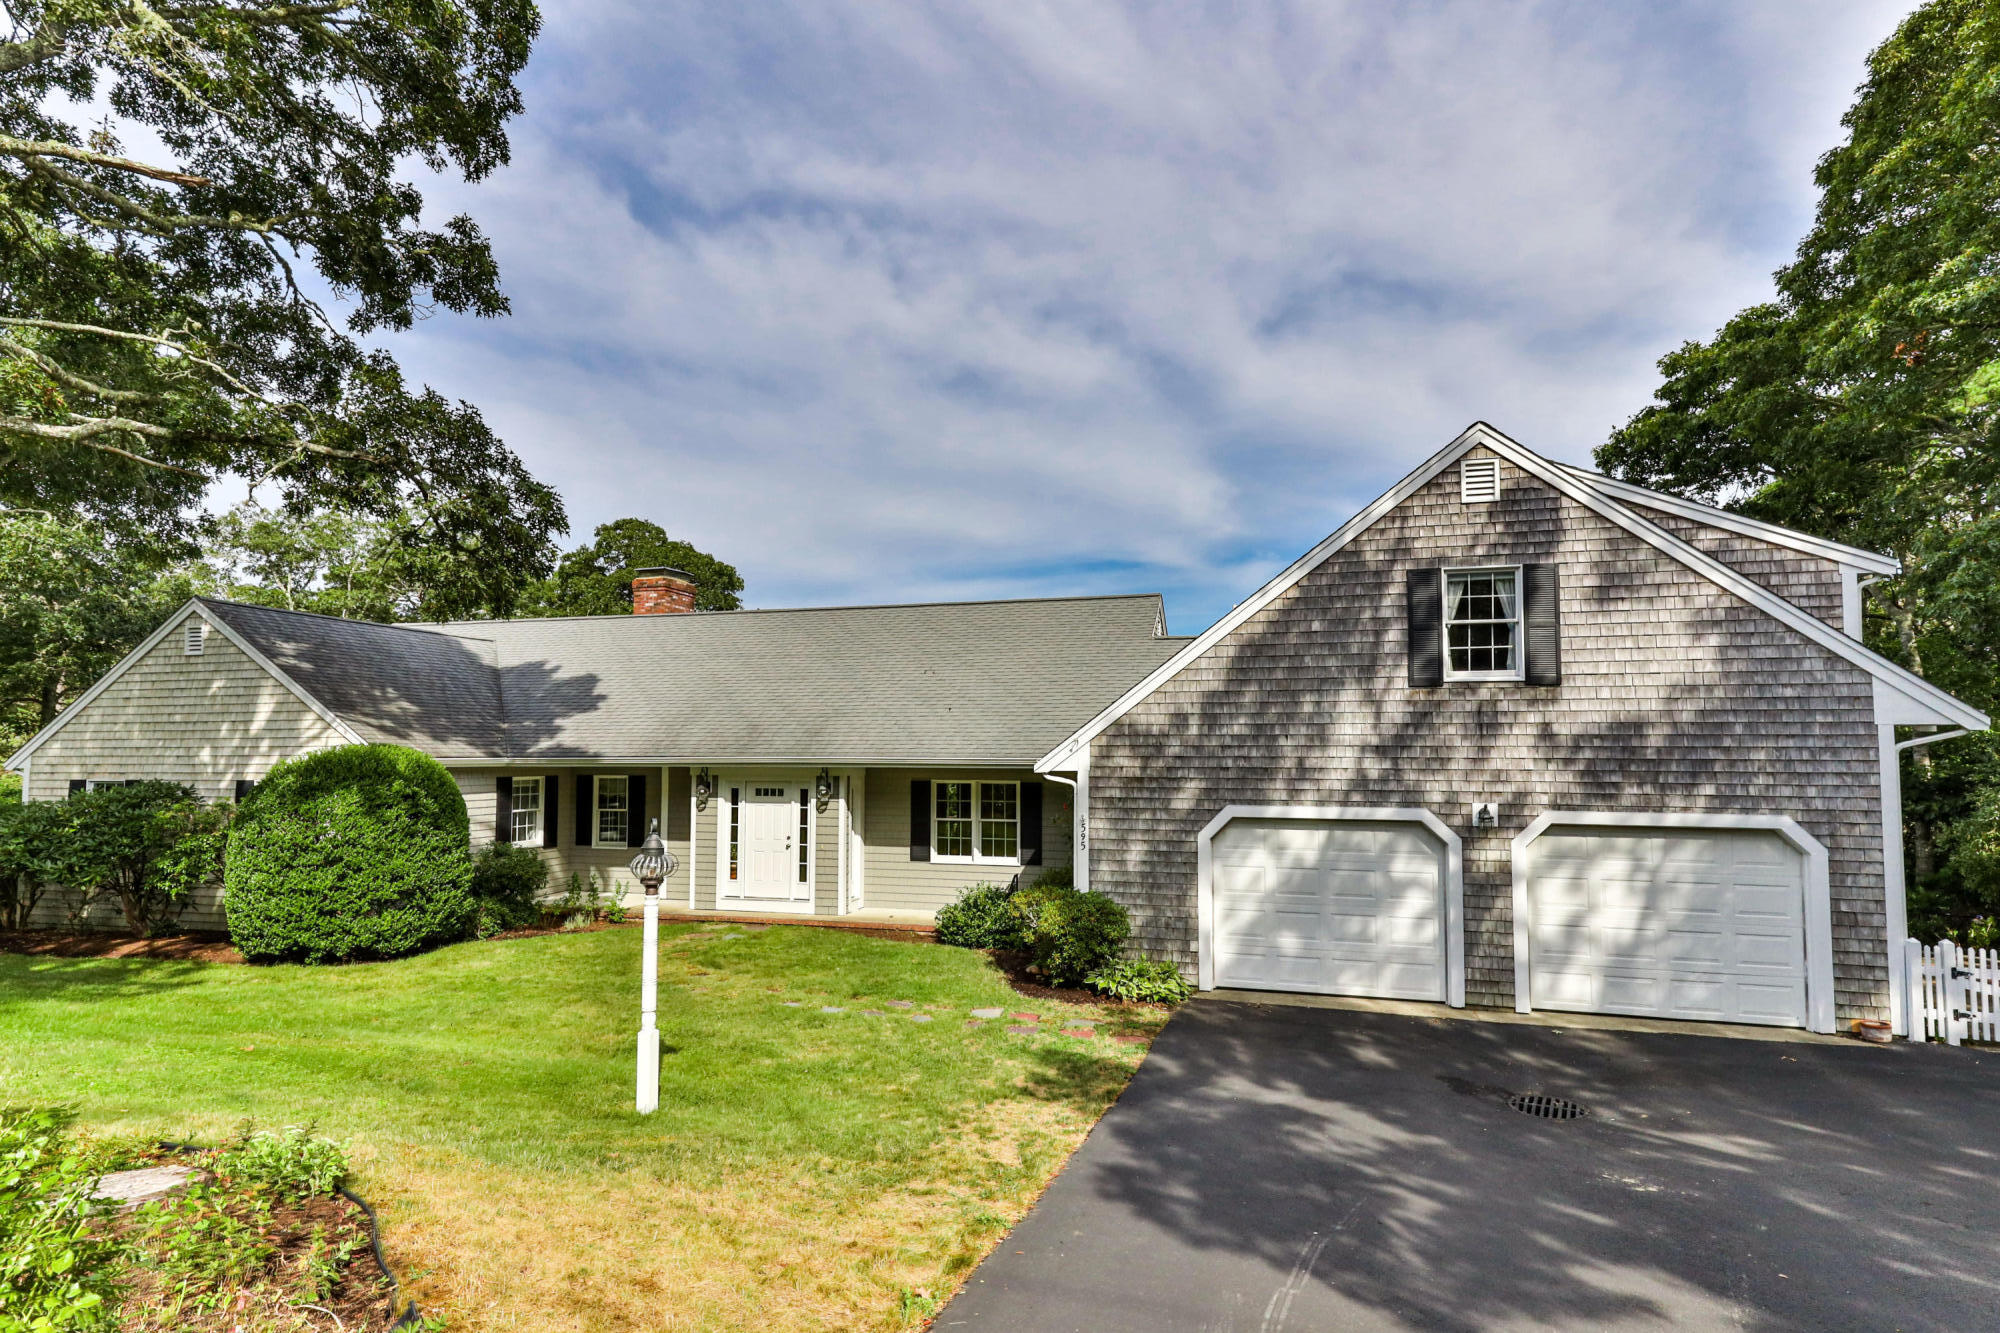 595 Riverview Drive, Chatham, MA details